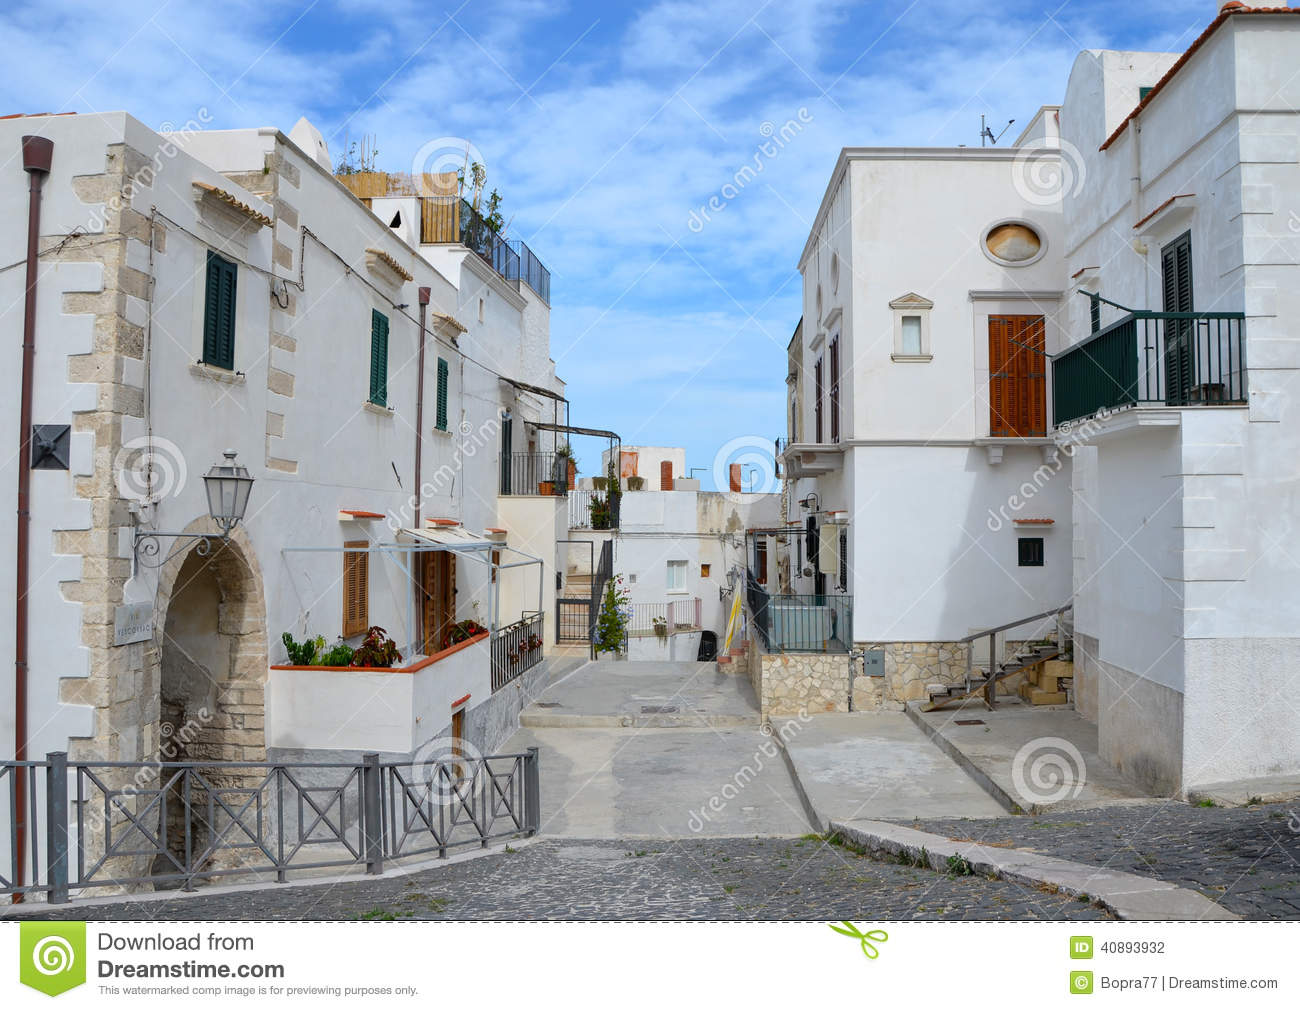 A beautiful street in Vieste